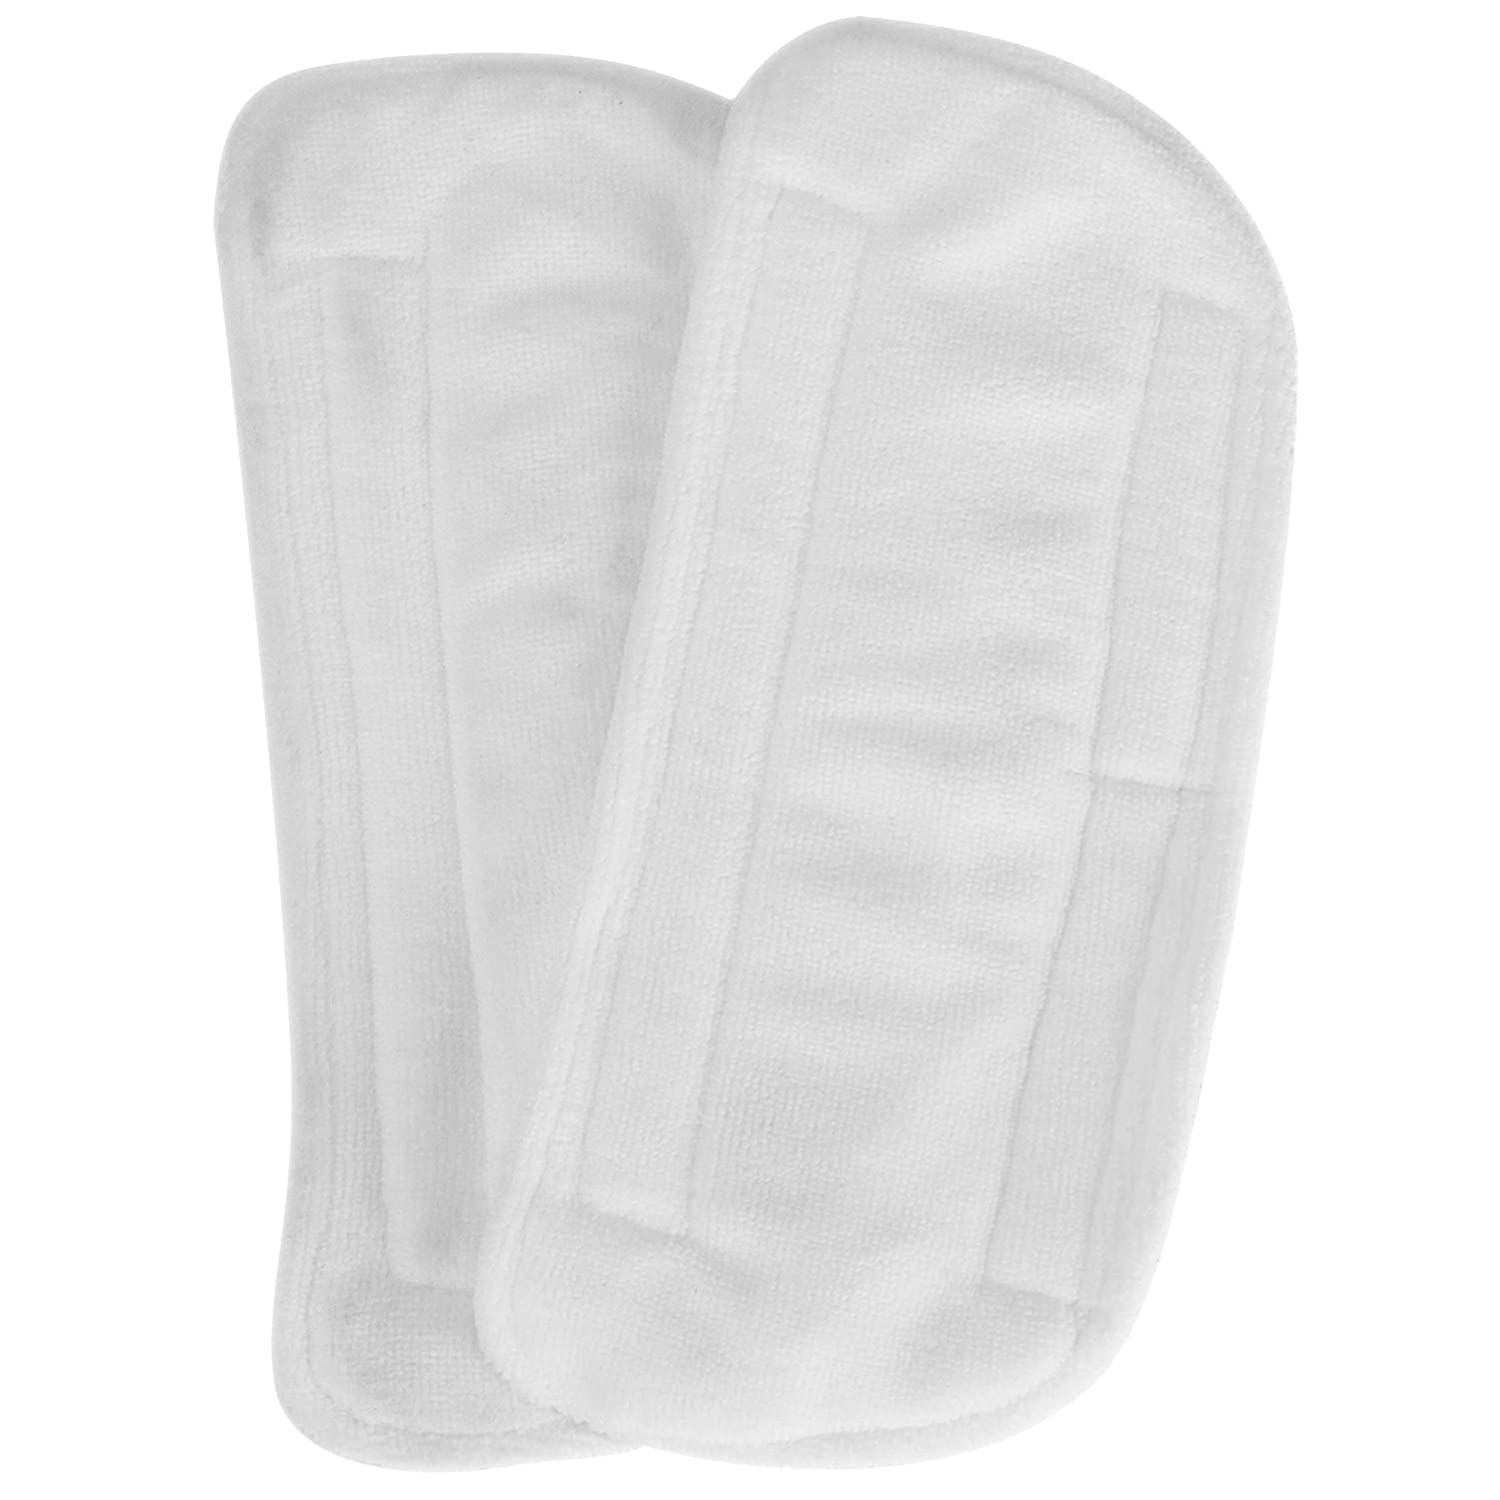 White Secura 2 Pack Microfiber Mop Pads Replacement Washable Cleaning Pads for EM-516